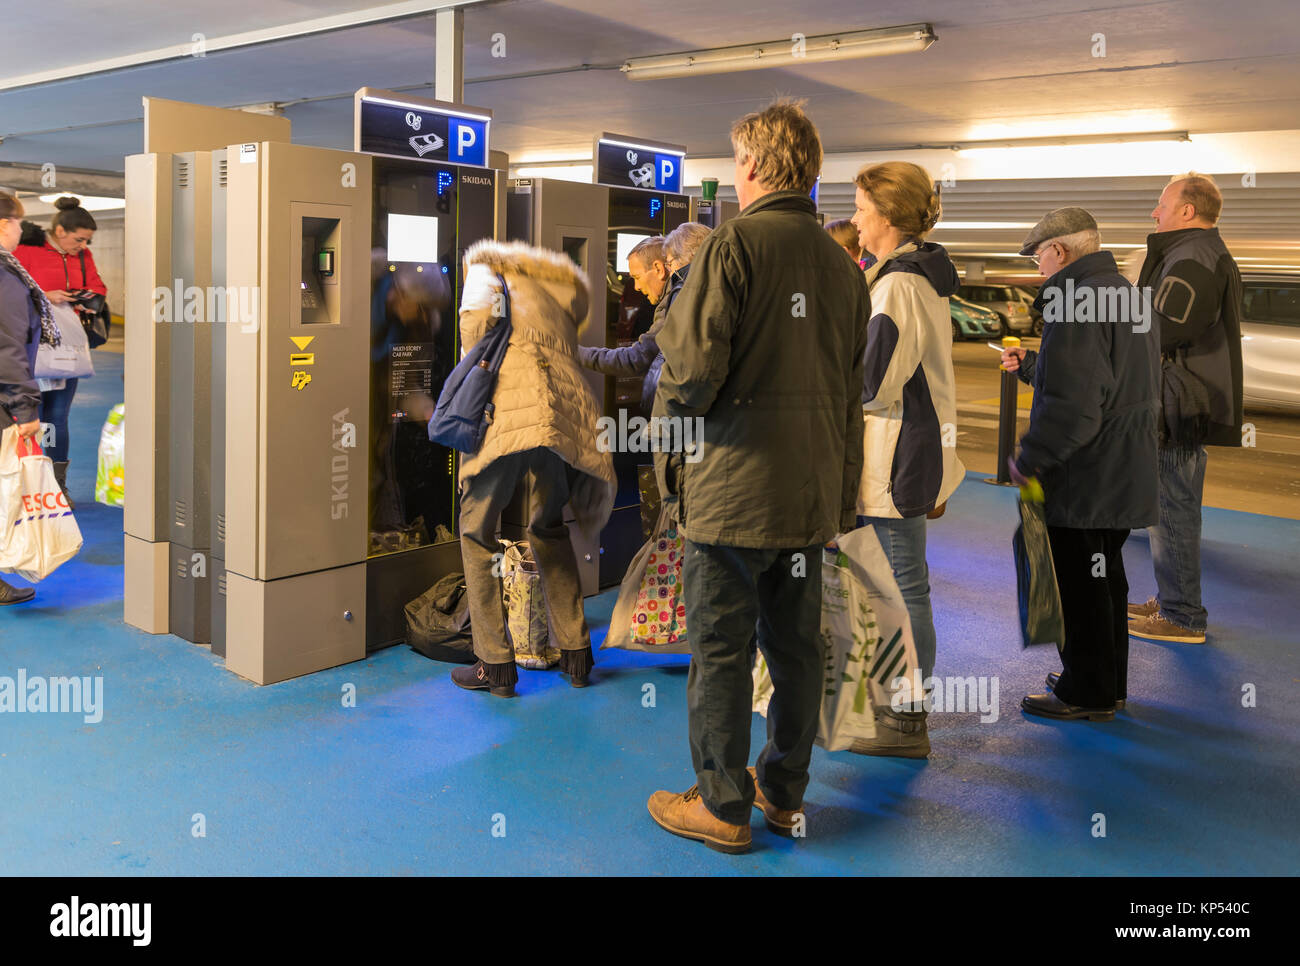 Queue of people in a multi-storey car park in the UK waiting to buy a ticket from parking ticket machines. - Stock Image